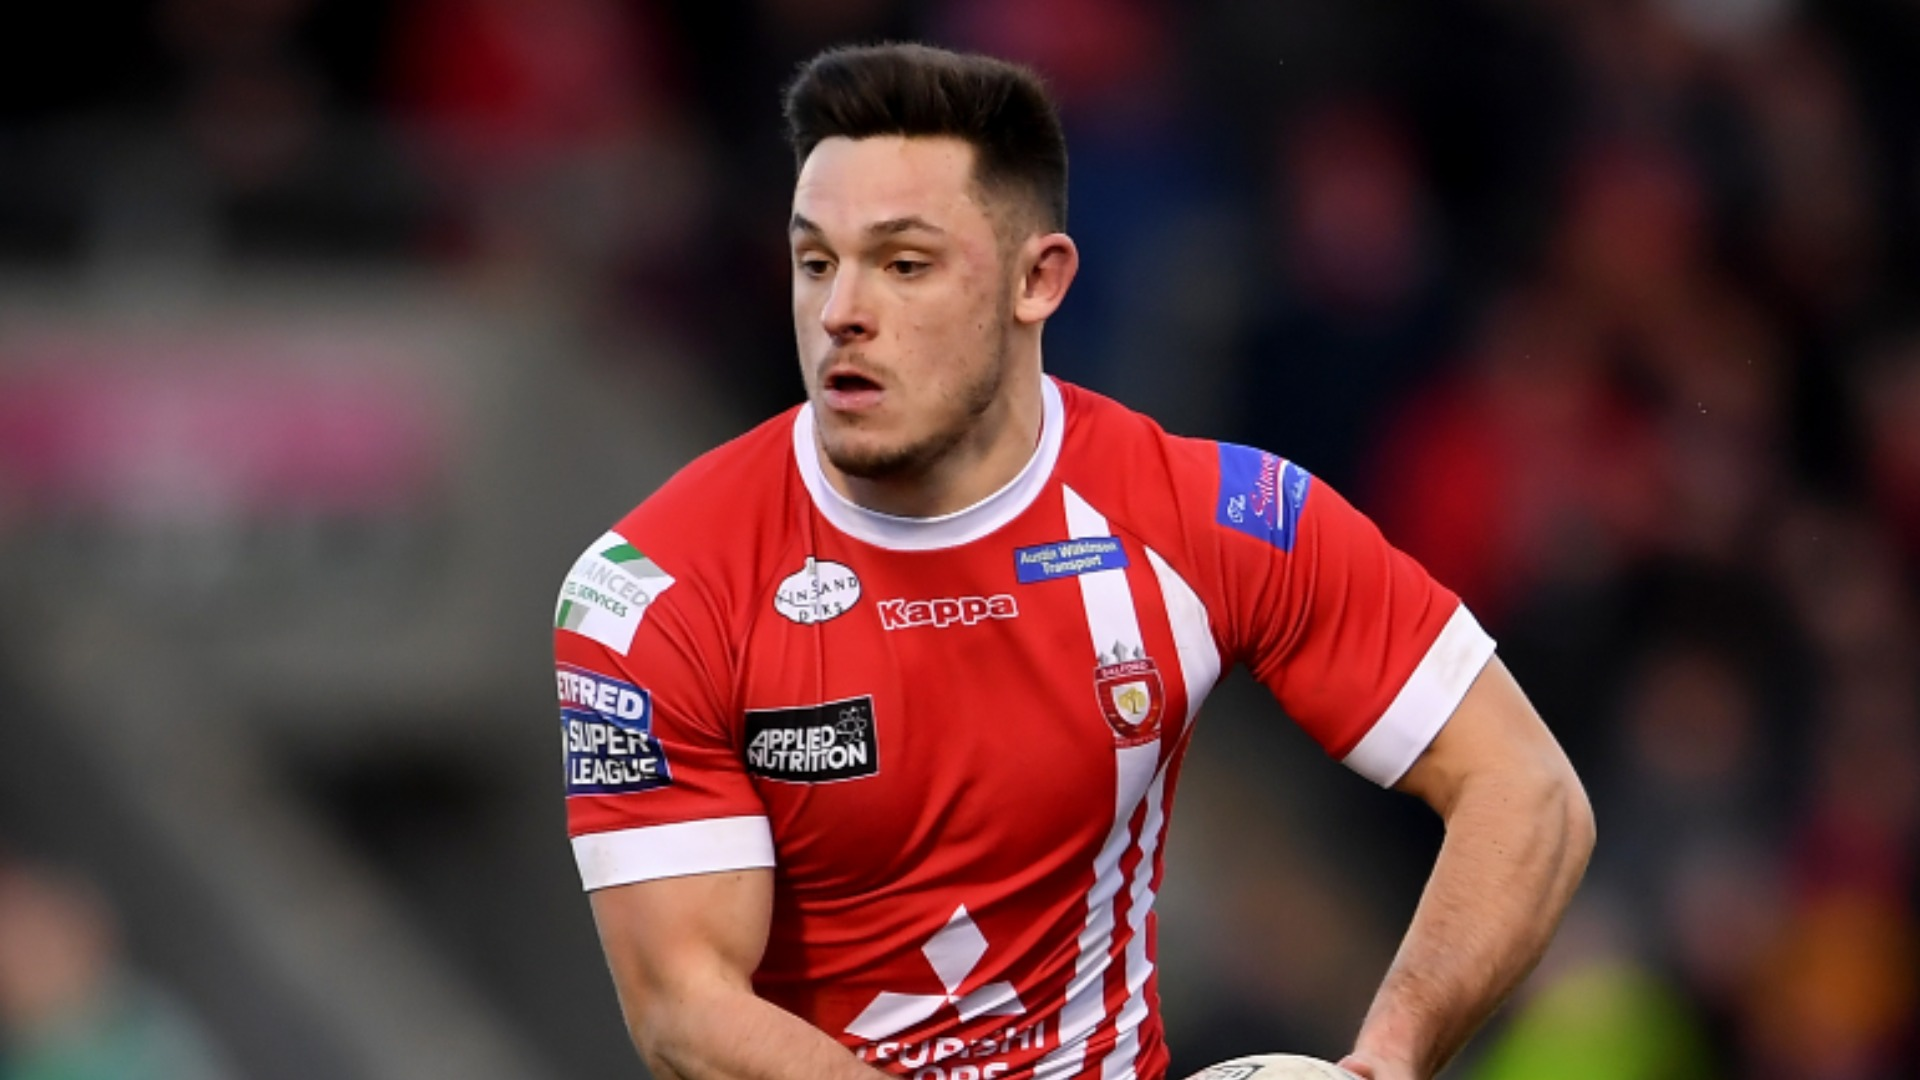 Salford Red Devils eased past Wakefield Trinity at home in Super League on Sunday thanks to Niall Evalds' hat-trick.